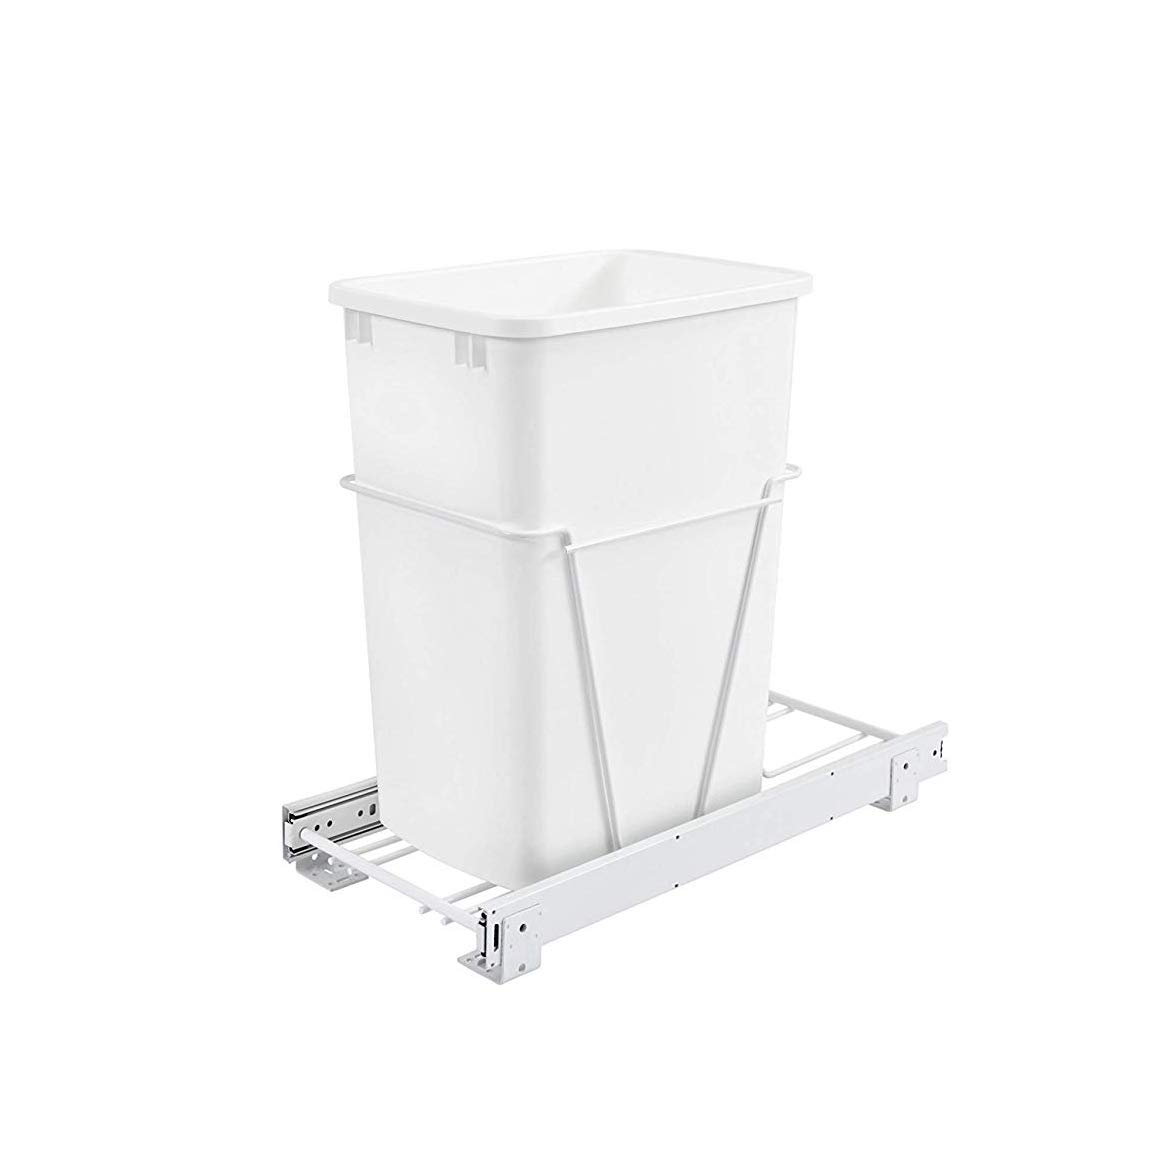 Rev-A-Shelf RV-12PB S 35 Quart Pull Out Waste Container with Basket, White by Rev-A-Shelf